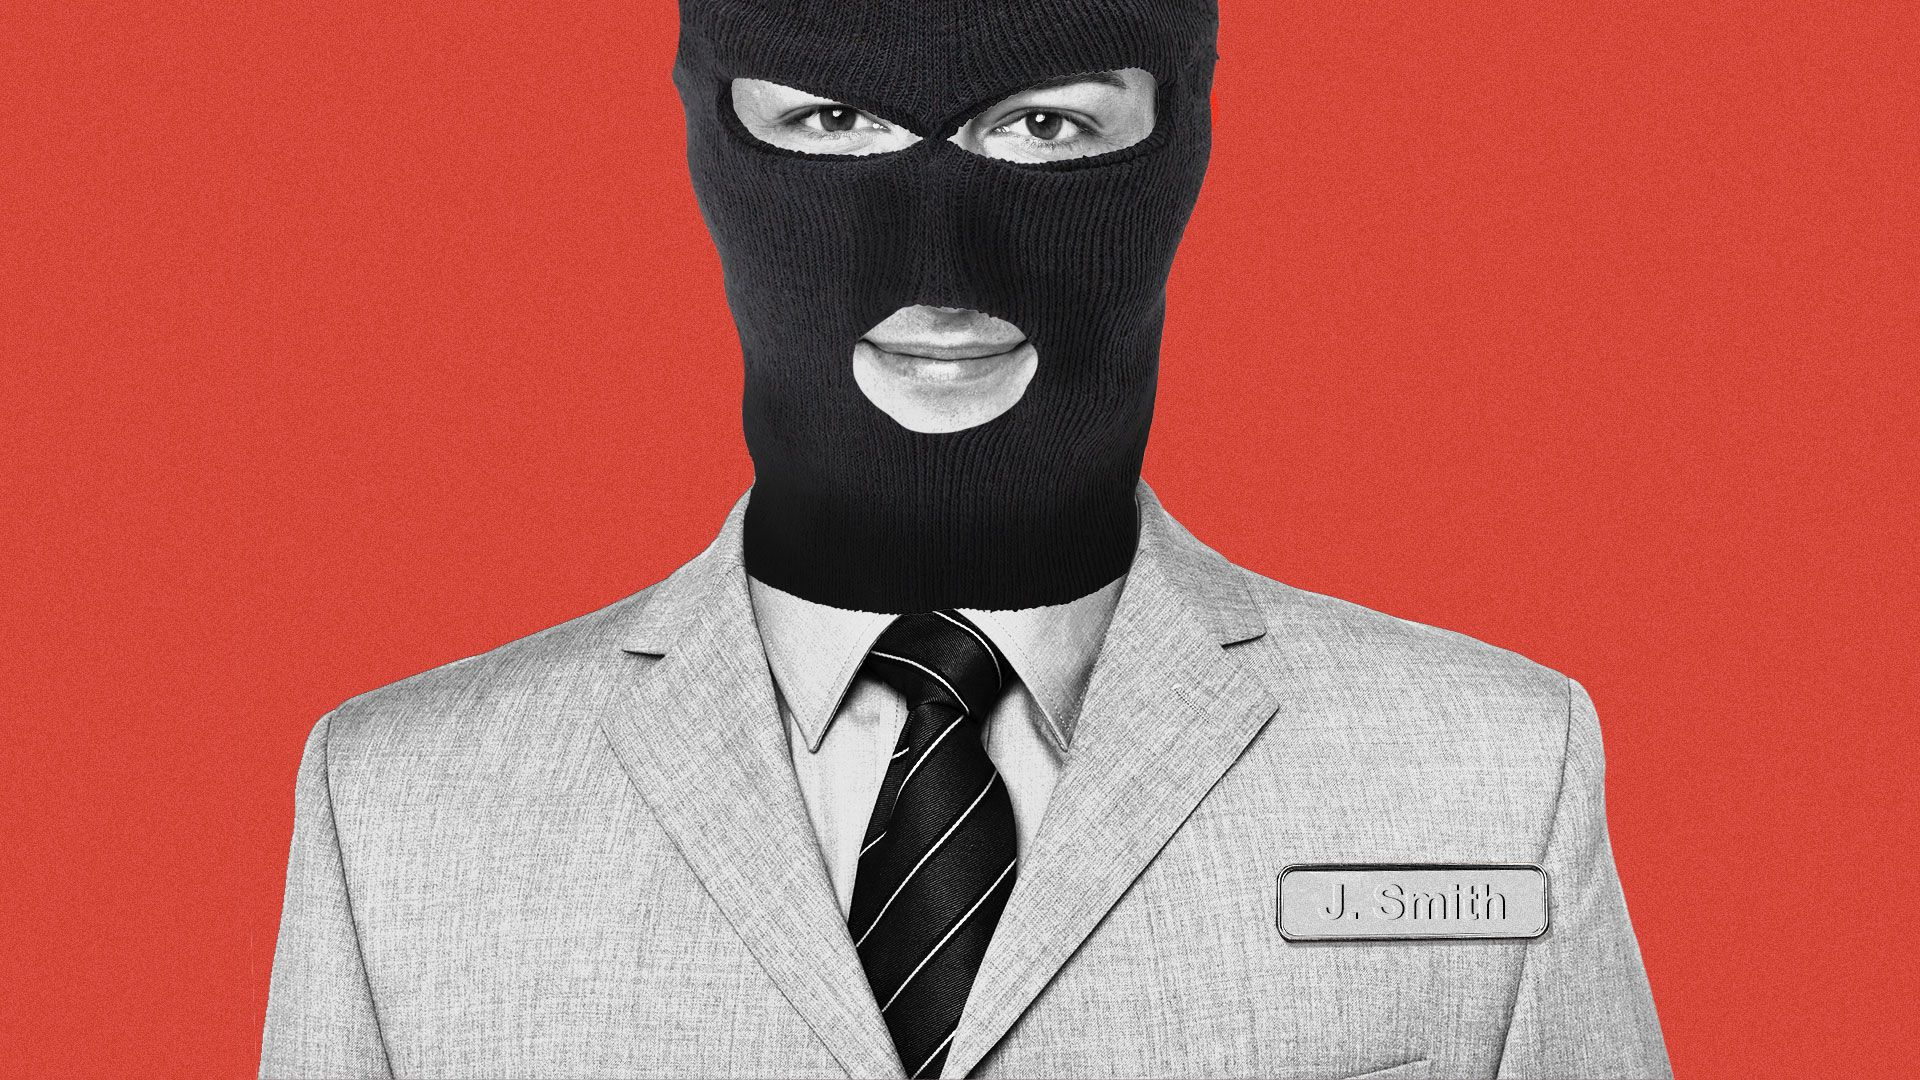 Illustration of an employee with a name tag, wearing a balaclava over his face.